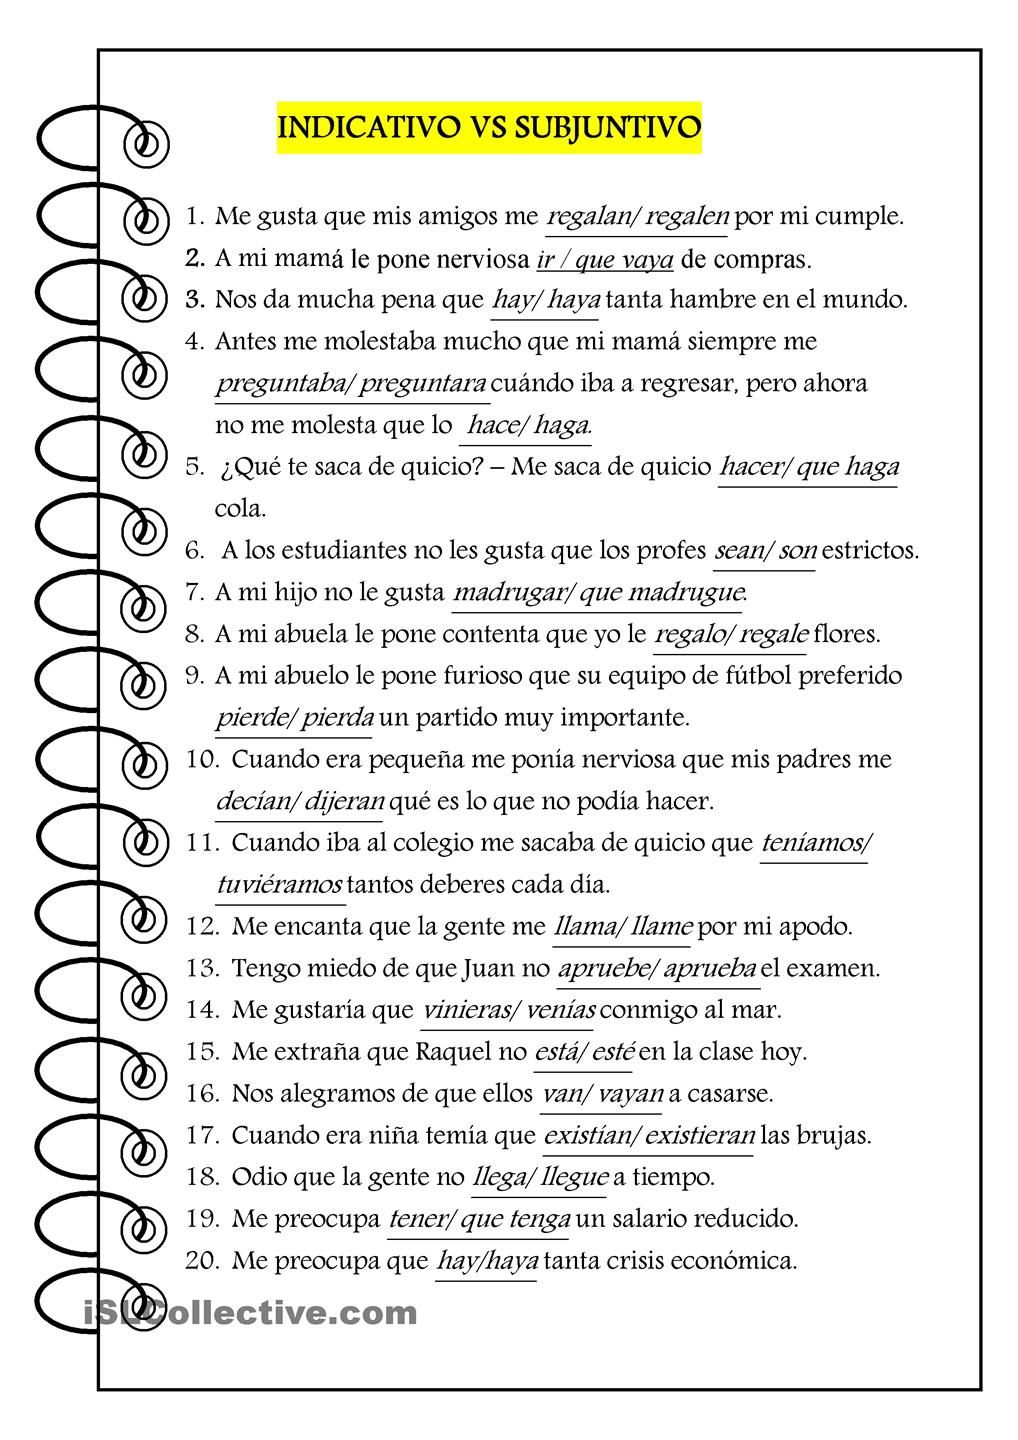 Indicativo vs subjuntivo spanish instruction materials for En y frances ejercicios